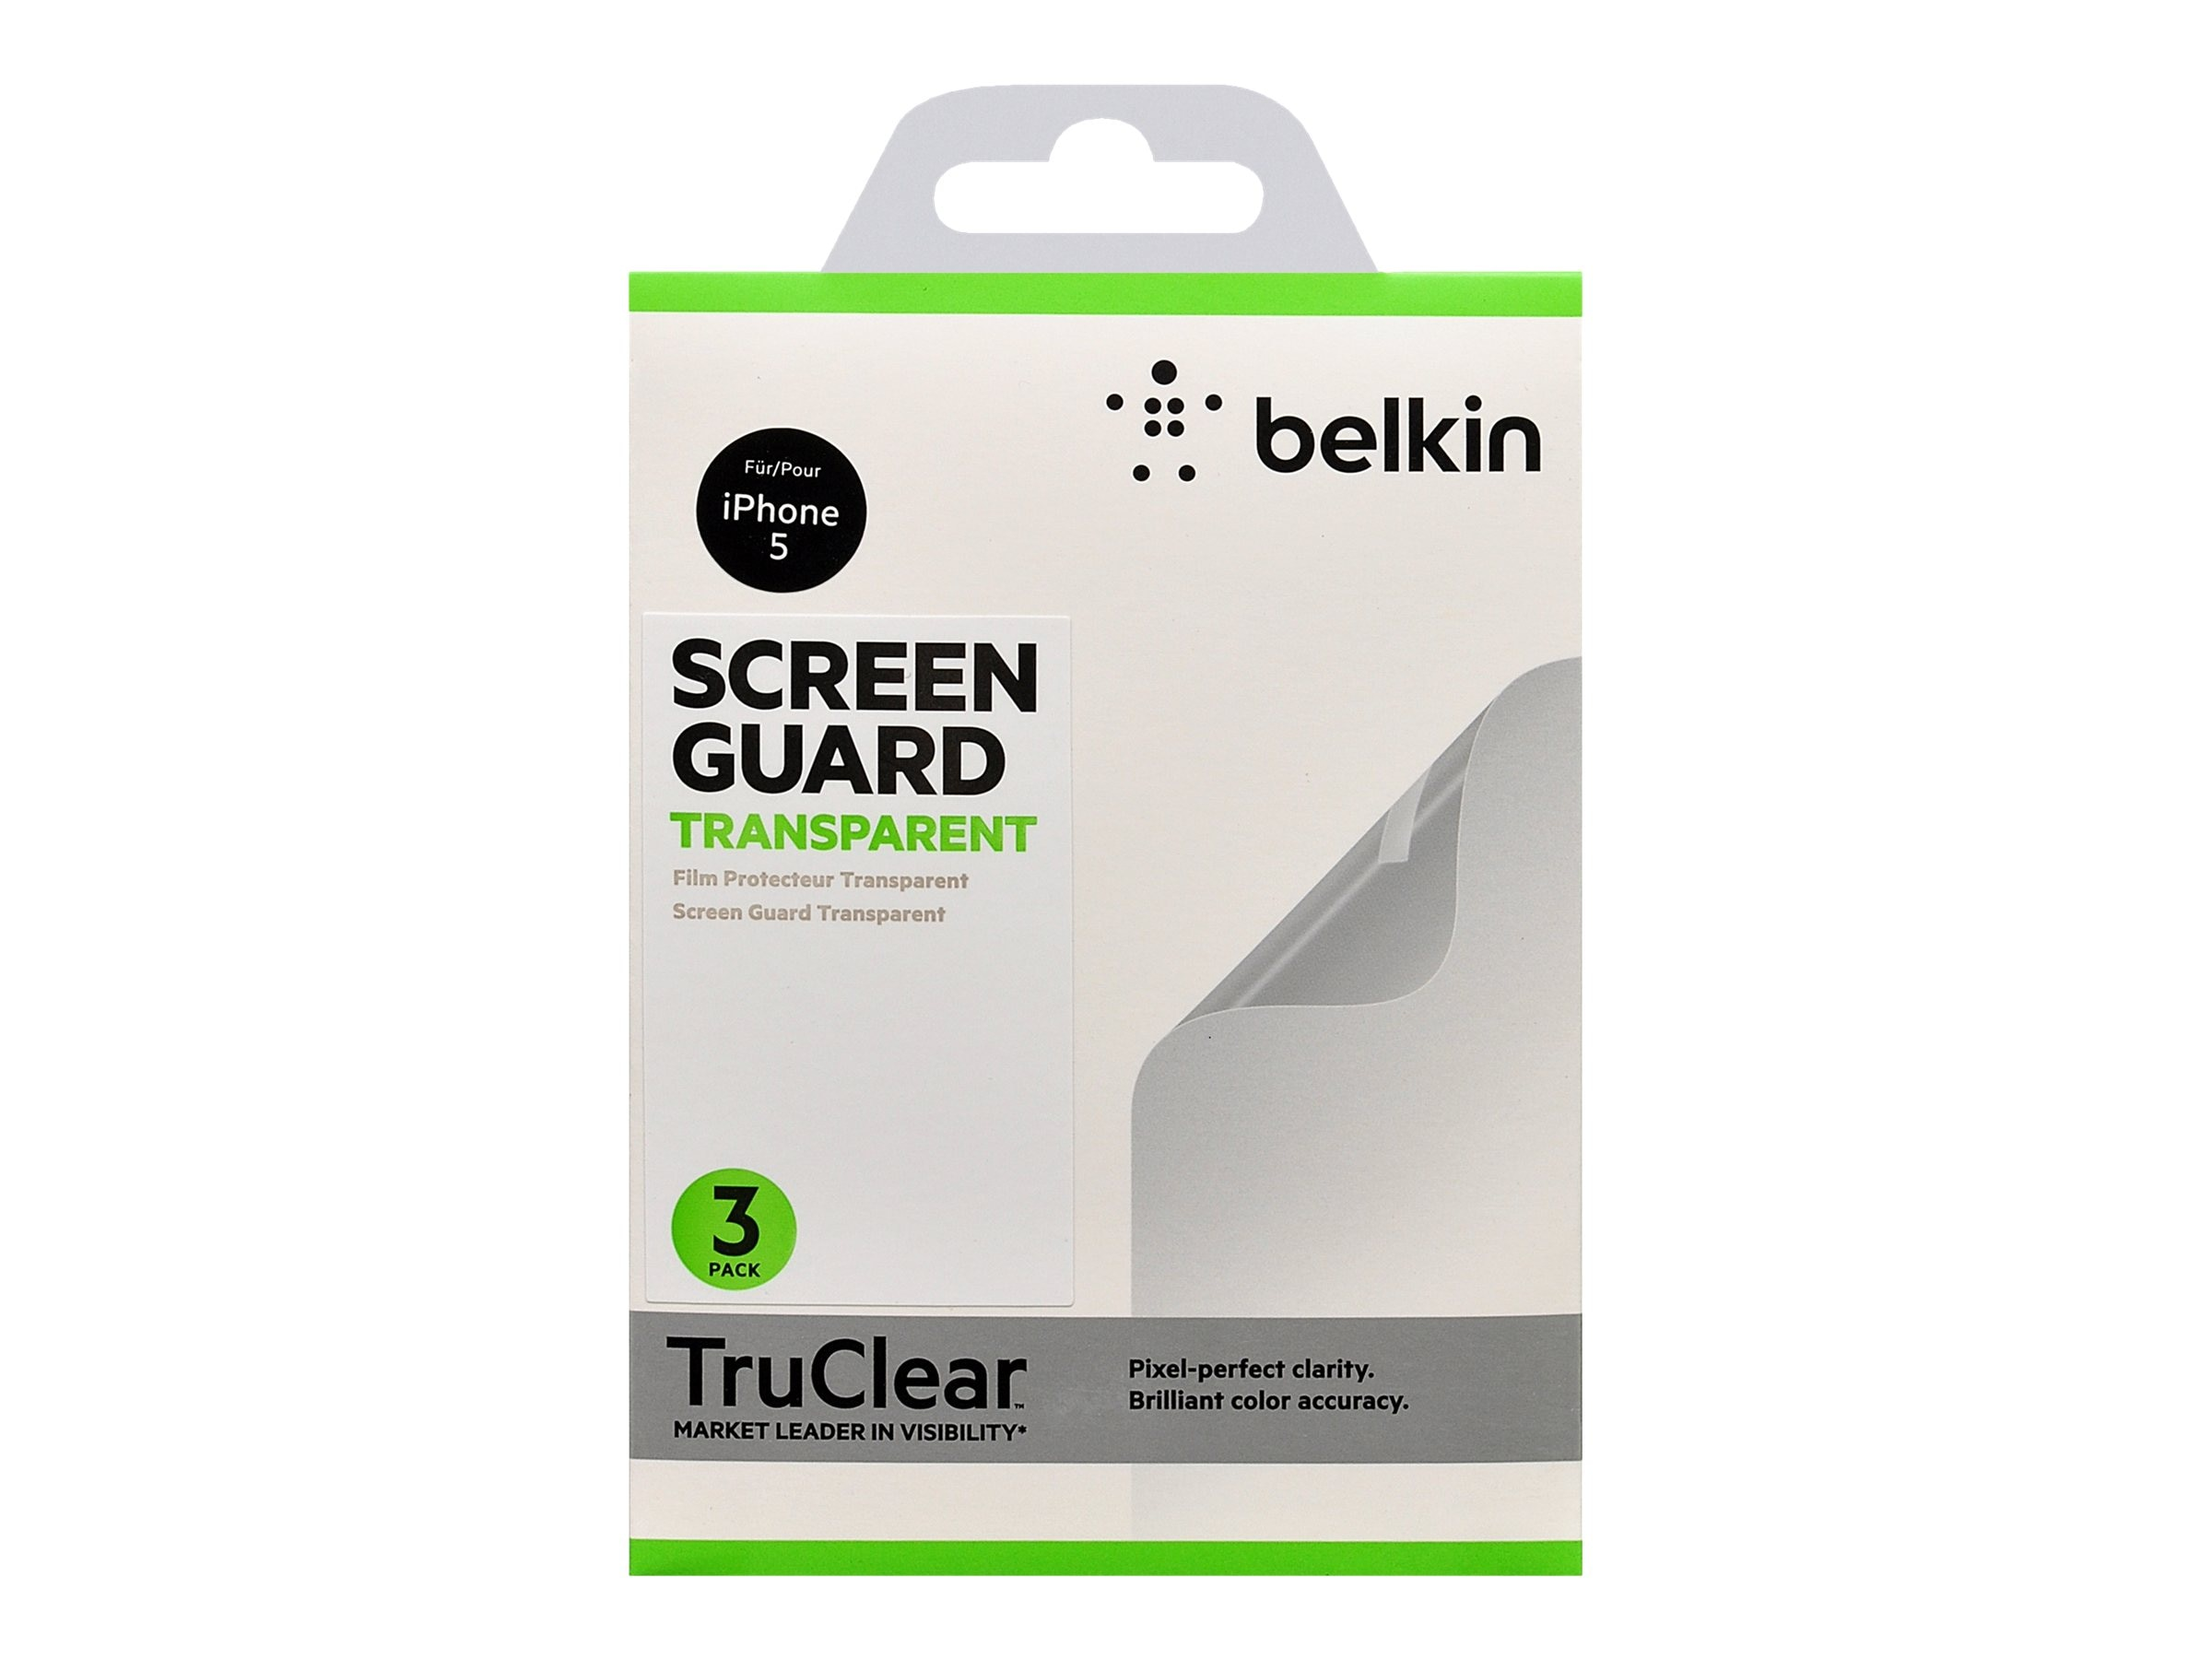 Belkin Screen Protector for iPhone 5, Clear, F8W179TT3, 15077094, Protective & Dust Covers